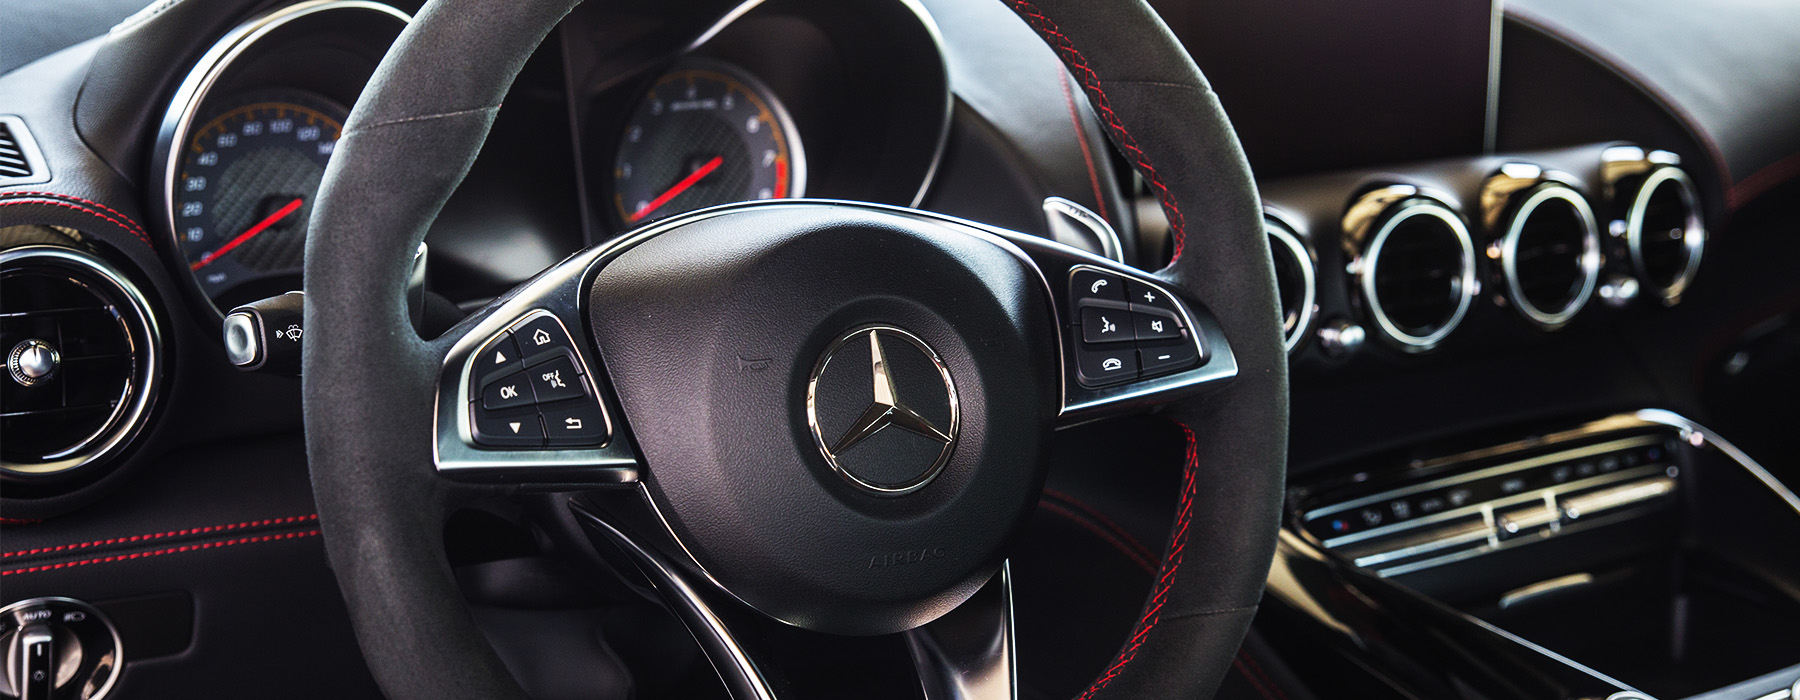 drive a mercedes amg gt s on a racetrack at exotics racing